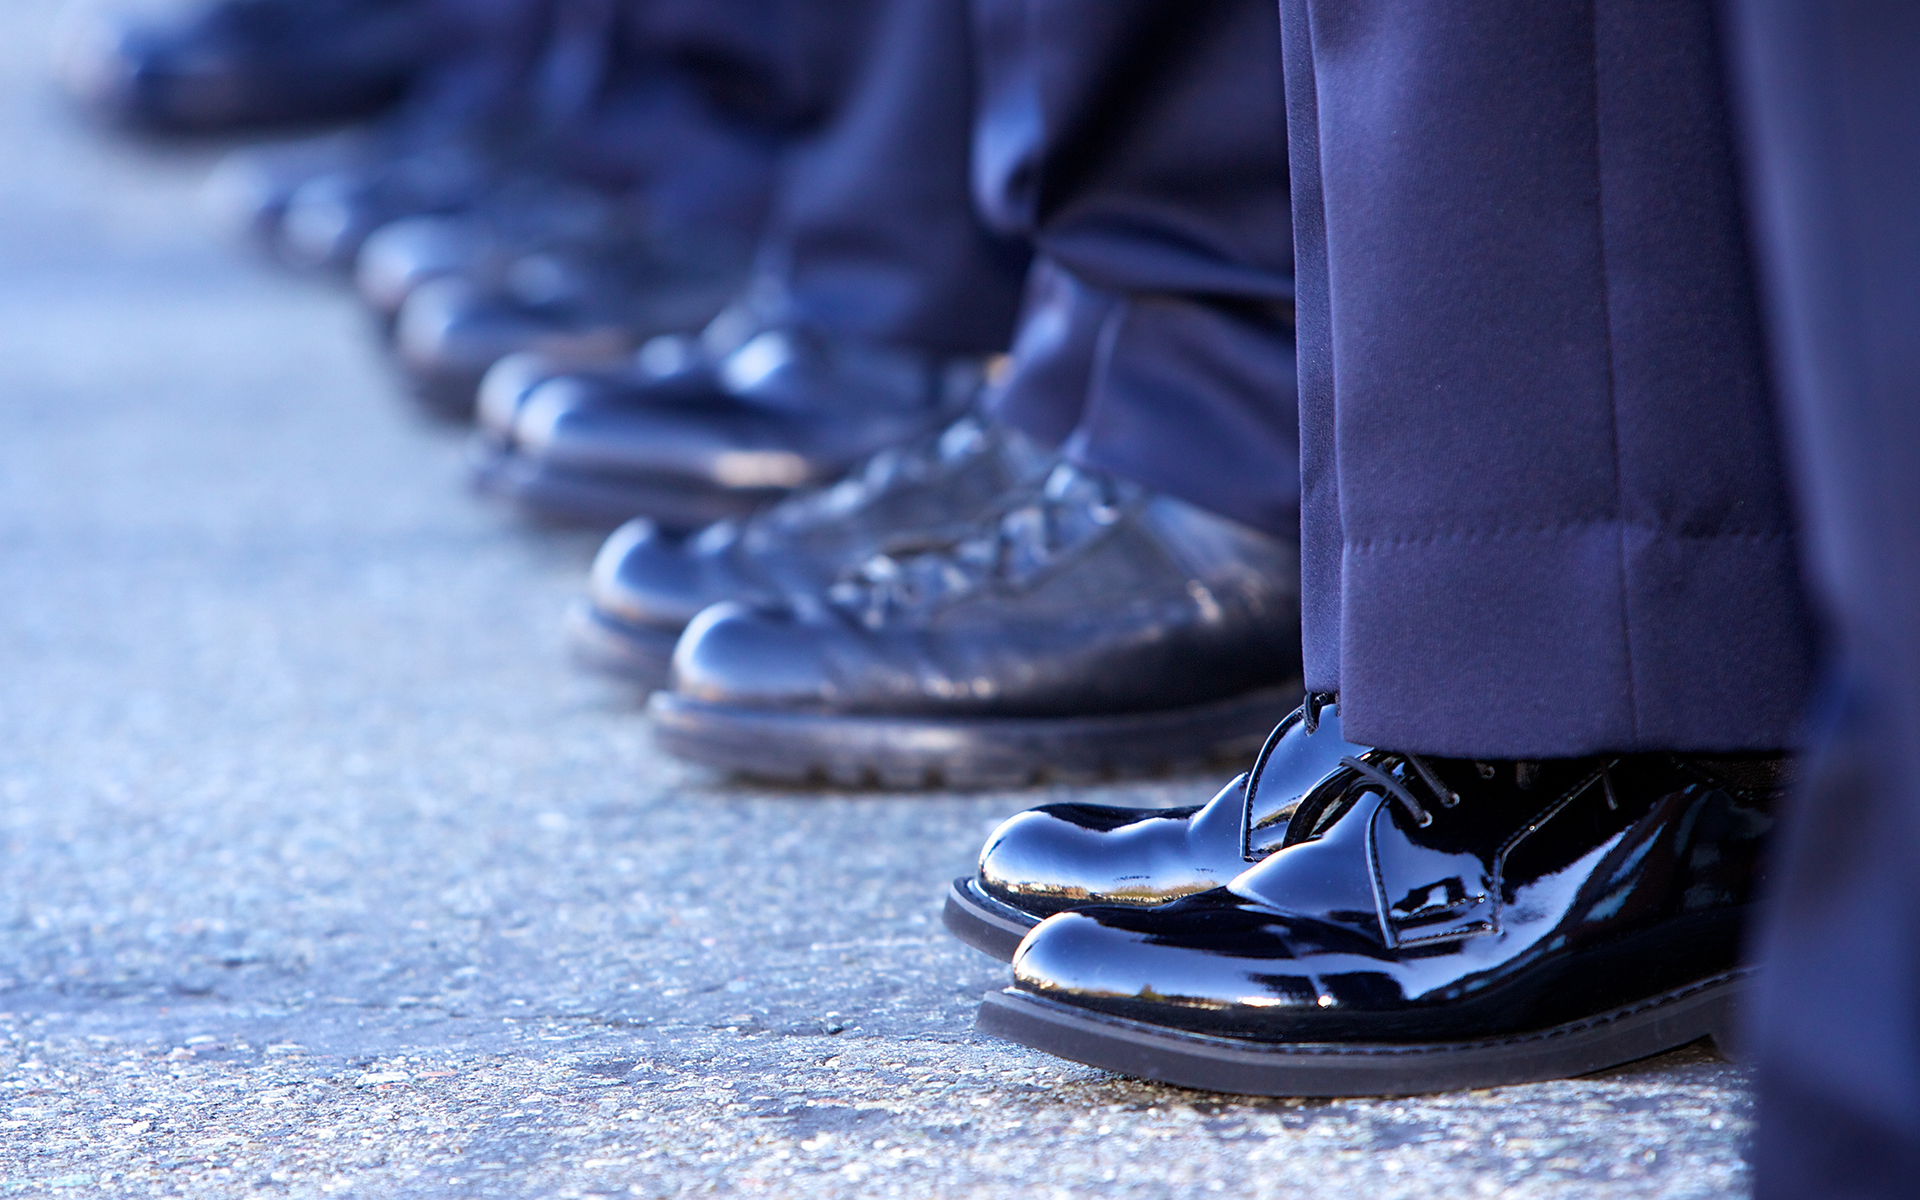 Mindful policing - systemic change - police officers line up in a row